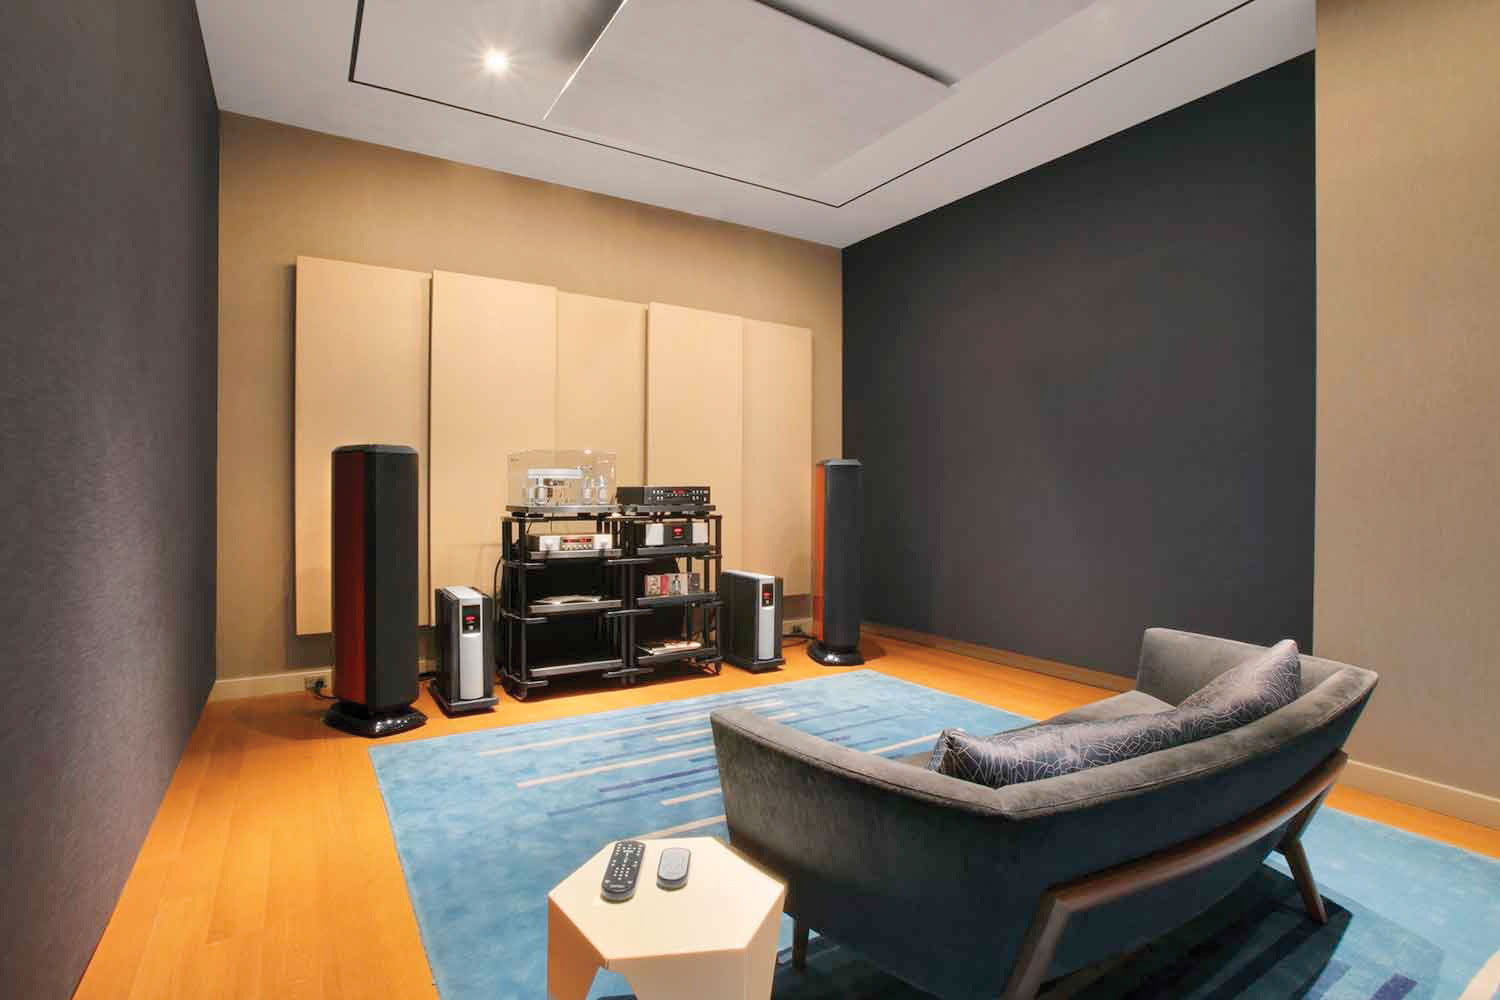 Harman's New York City Listening Room showcases the company's consumer and audiophile equipment.